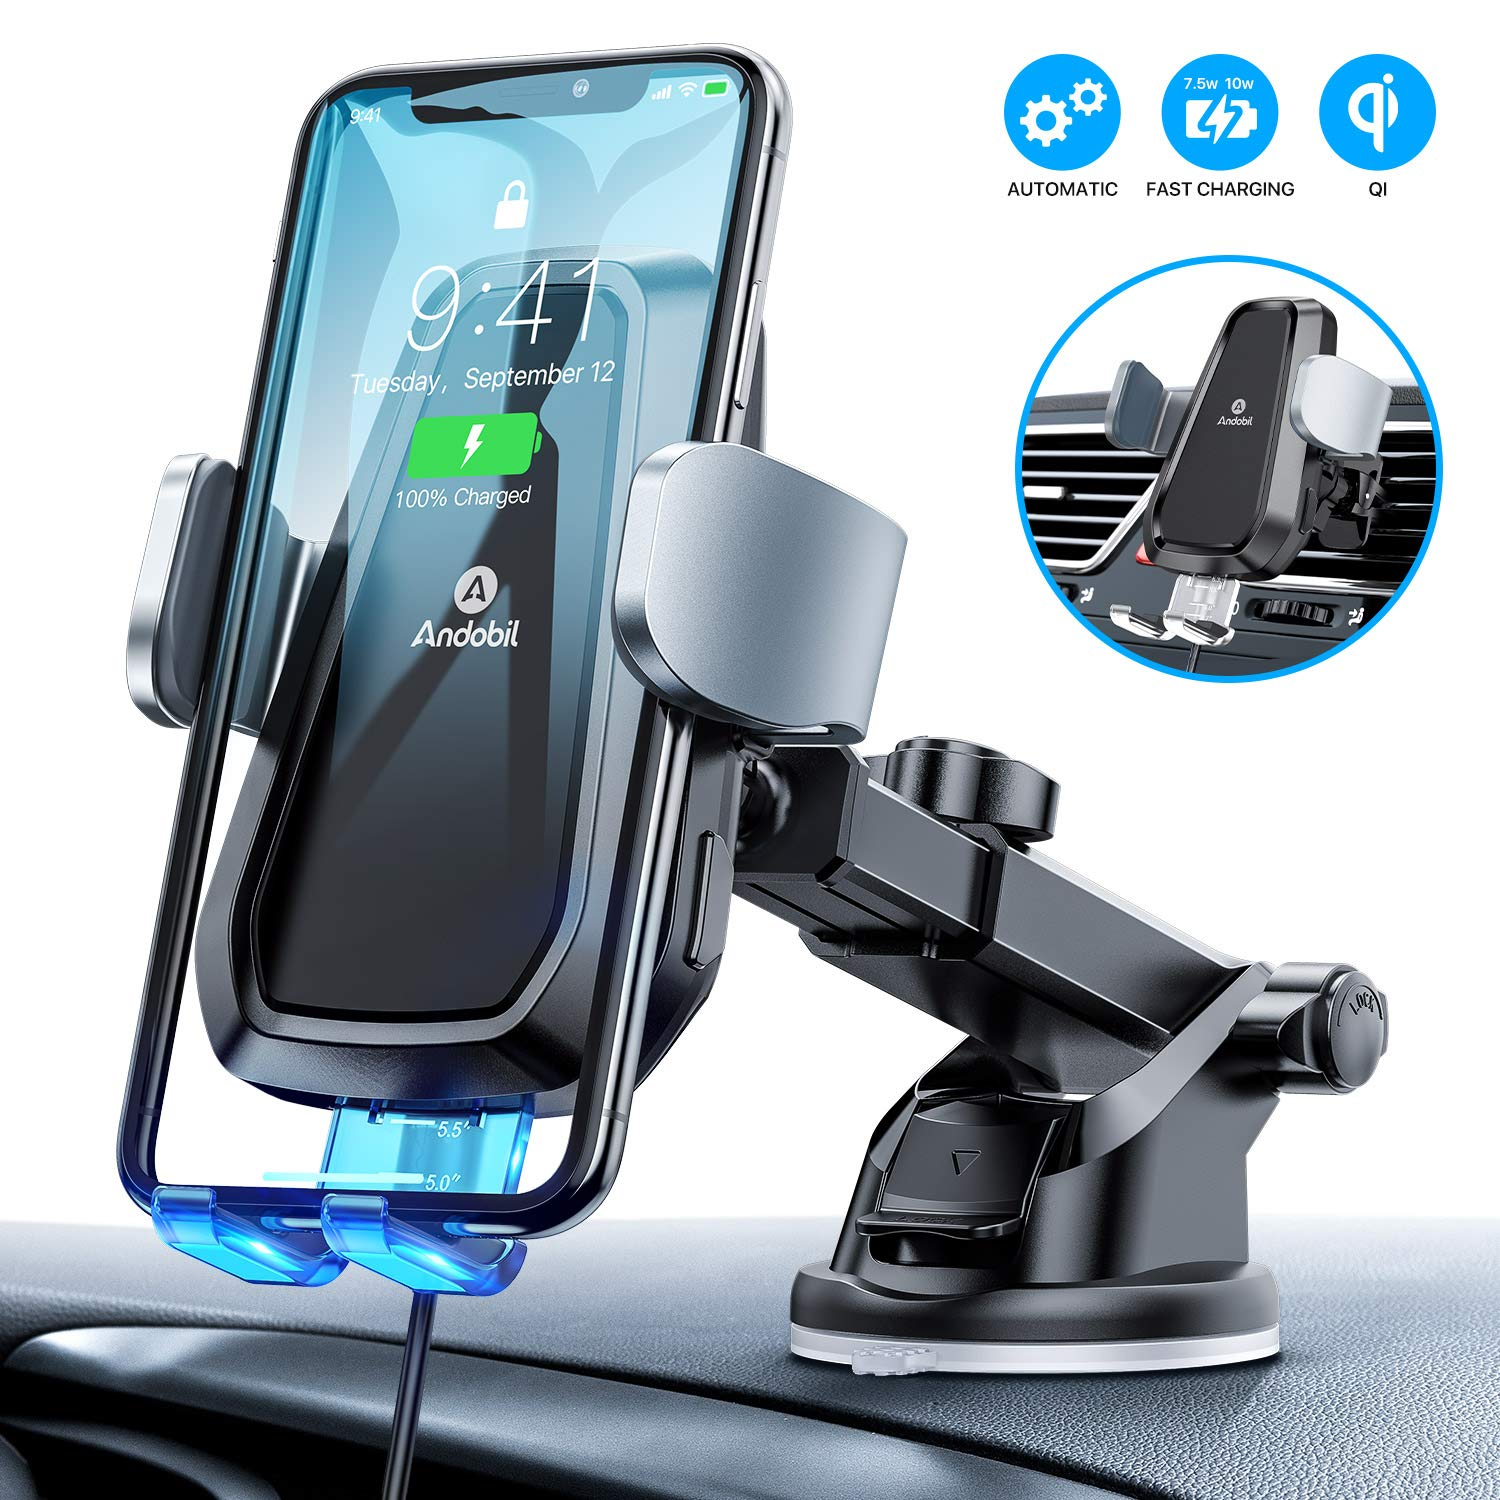 Andobil Wireless Car Charger Mount, Auto Clamping Air Vent Dashboard Windshield Phone Holder Compatible iPhone 11/11 Pro/ 11 Pro Max/Xs Max/Xs/XR/X/8+/8, Samsung S10+/S10/S9+/S9/S8+/S8 by andobil